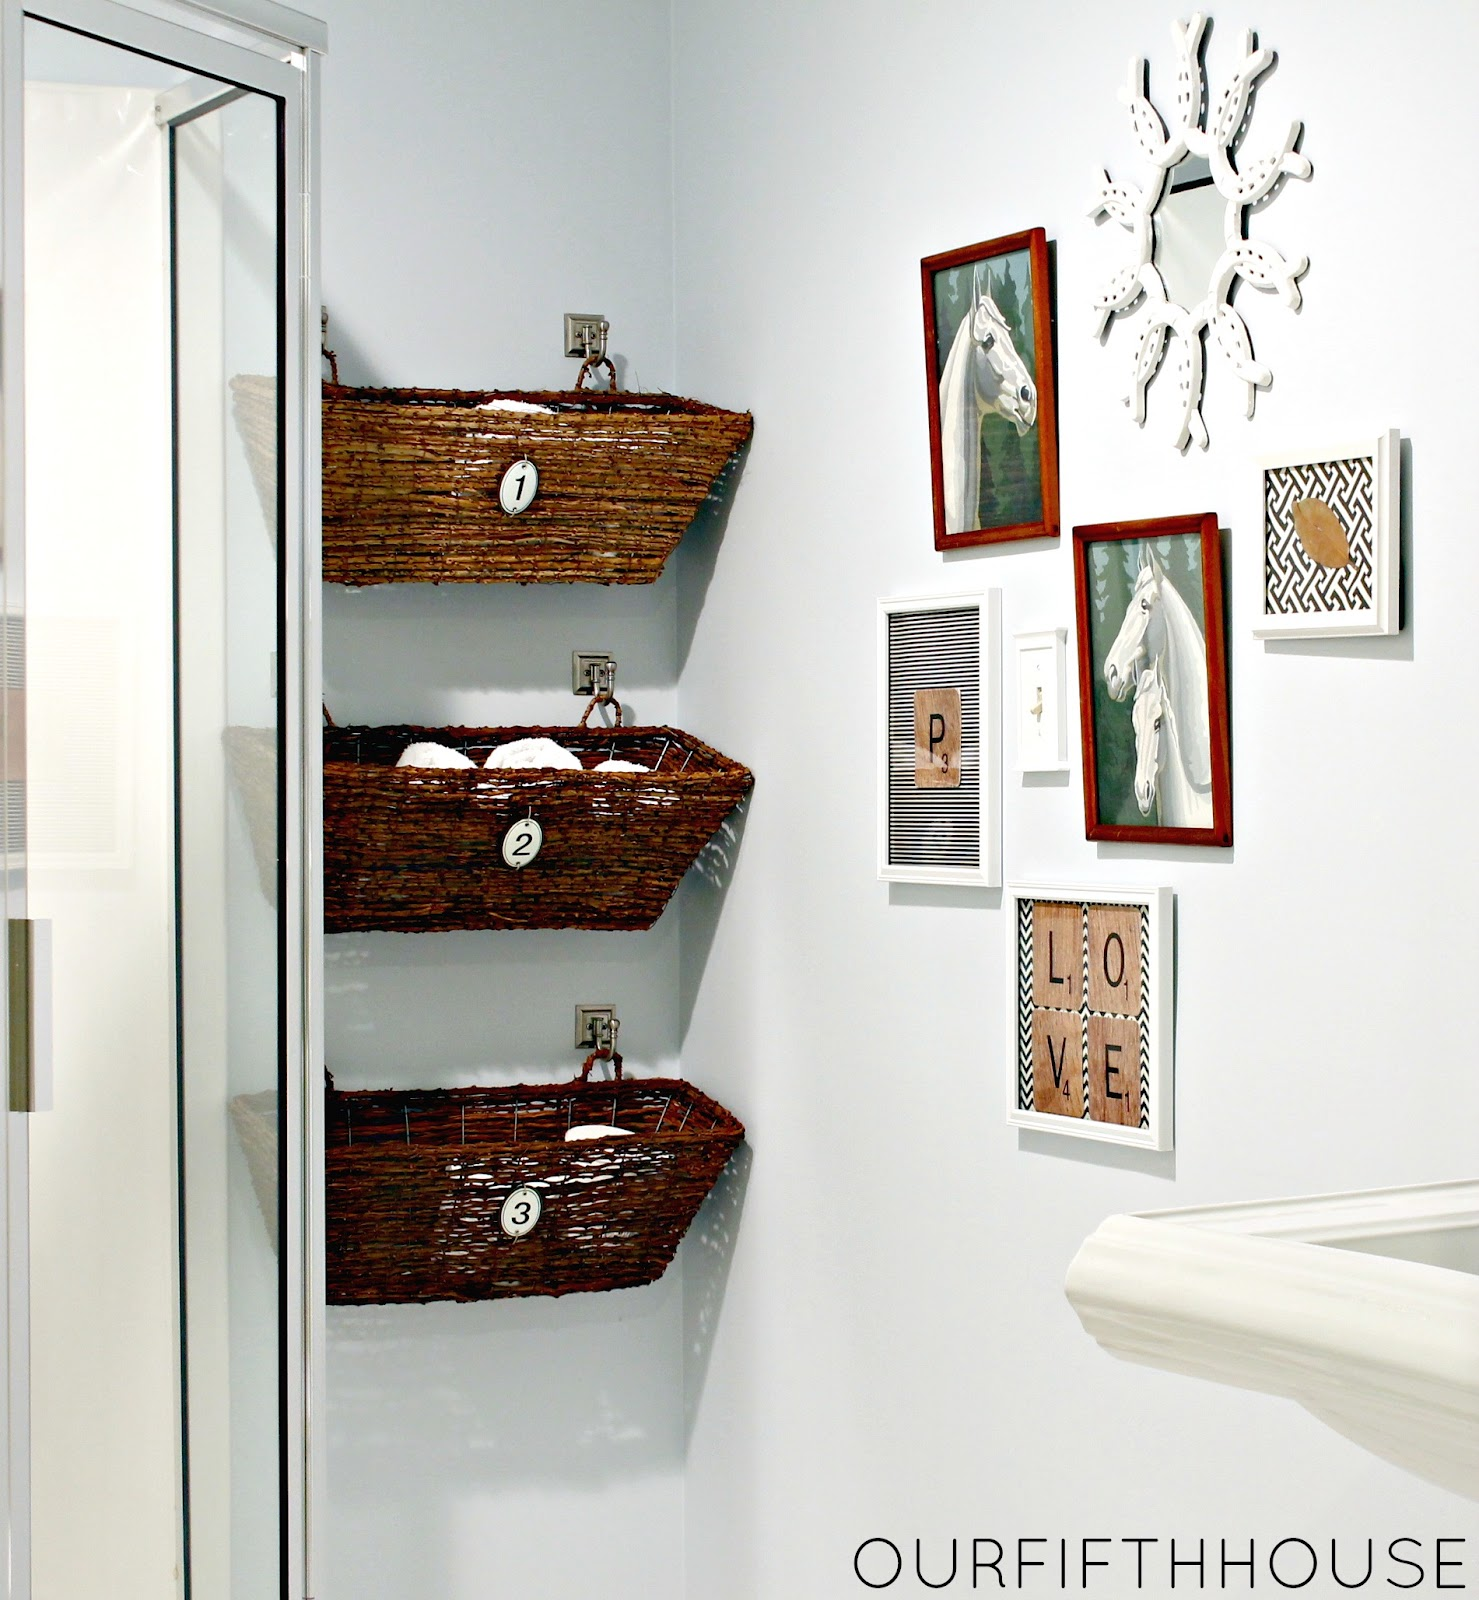 Diy bathroom ideas for small spaces - 12 Small Bathroom Storage Ideas Wall Storage Solutons And Shelves For Bathrooms